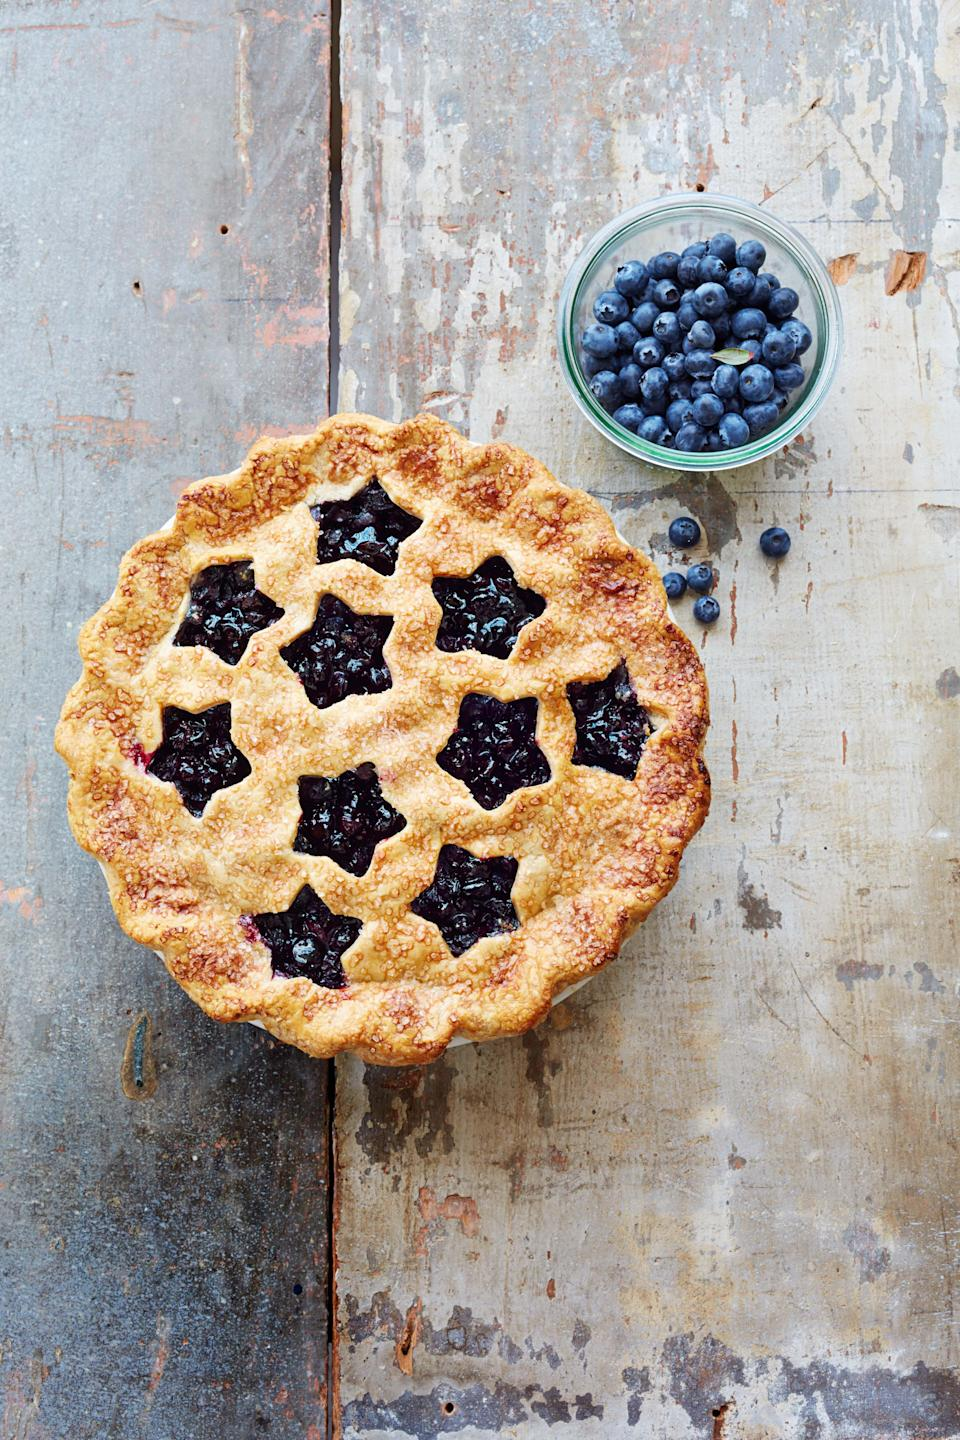 """<p>Easily turn your backyard barbecue into a star-spangled occasion thanks to these delicious, Instagram-worthy 4th of July desserts, including cakes, <a href=""""https://www.goodhousekeeping.com/food-recipes/dessert/g4315/fourth-of-july-cupcakes/"""" rel=""""nofollow noopener"""" target=""""_blank"""" data-ylk=""""slk:4th of July cupcakes"""" class=""""link rapid-noclick-resp"""">4th of July cupcakes</a>, popsicles and other homemade treats. Since the hot summer temps are already in full swing, there are even a few <a href=""""https://www.goodhousekeeping.com/food-recipes/dessert/g2497/no-cook-summer-desserts/"""" rel=""""nofollow noopener"""" target=""""_blank"""" data-ylk=""""slk:no-bake summer dessert"""" class=""""link rapid-noclick-resp"""">no-bake summer dessert</a> options on our list! We've also included a few fully red, white and blue picks too if you really went to get in the spirit of America's birthday, and don't forget the <a href=""""https://www.goodhousekeeping.com/food-recipes/g4316/fourth-of-july-drinks/"""" rel=""""nofollow noopener"""" target=""""_blank"""" data-ylk=""""slk:4th of July drinks"""" class=""""link rapid-noclick-resp"""">4th of July drinks</a> (which, in some cases, also feel like dessert).</p>"""